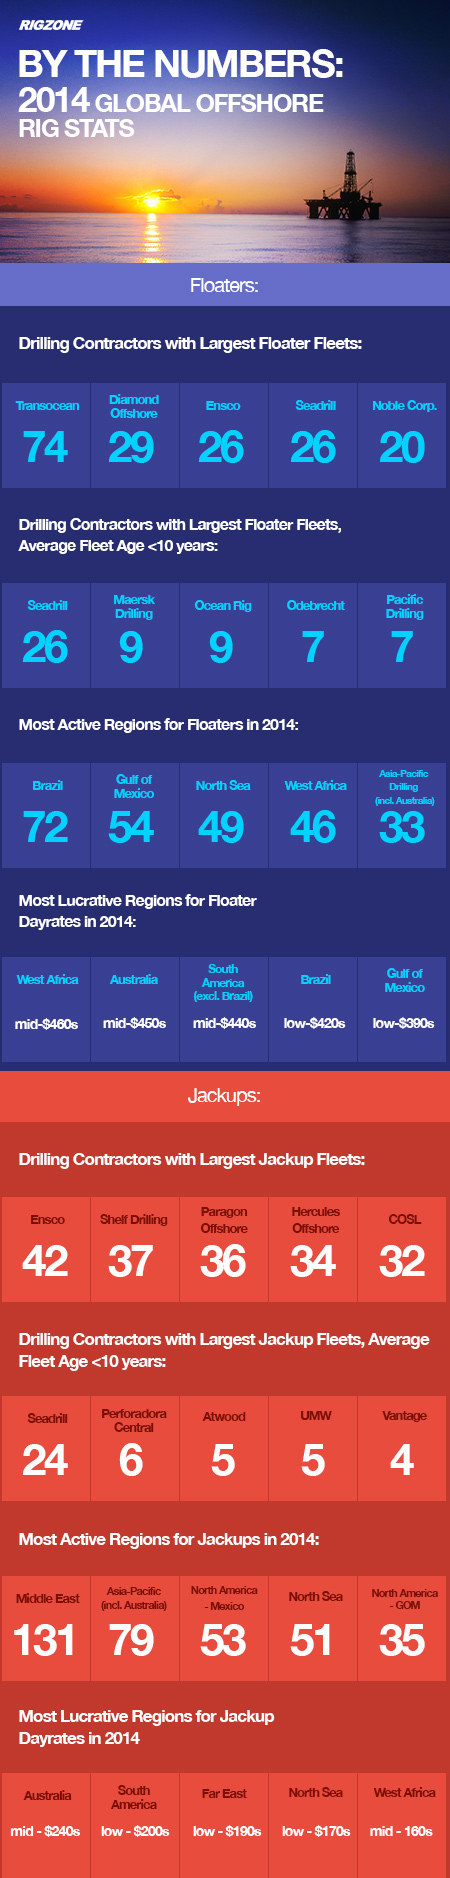 Rigzone highlights offshore rig activity for 2014 using RigLogix data.